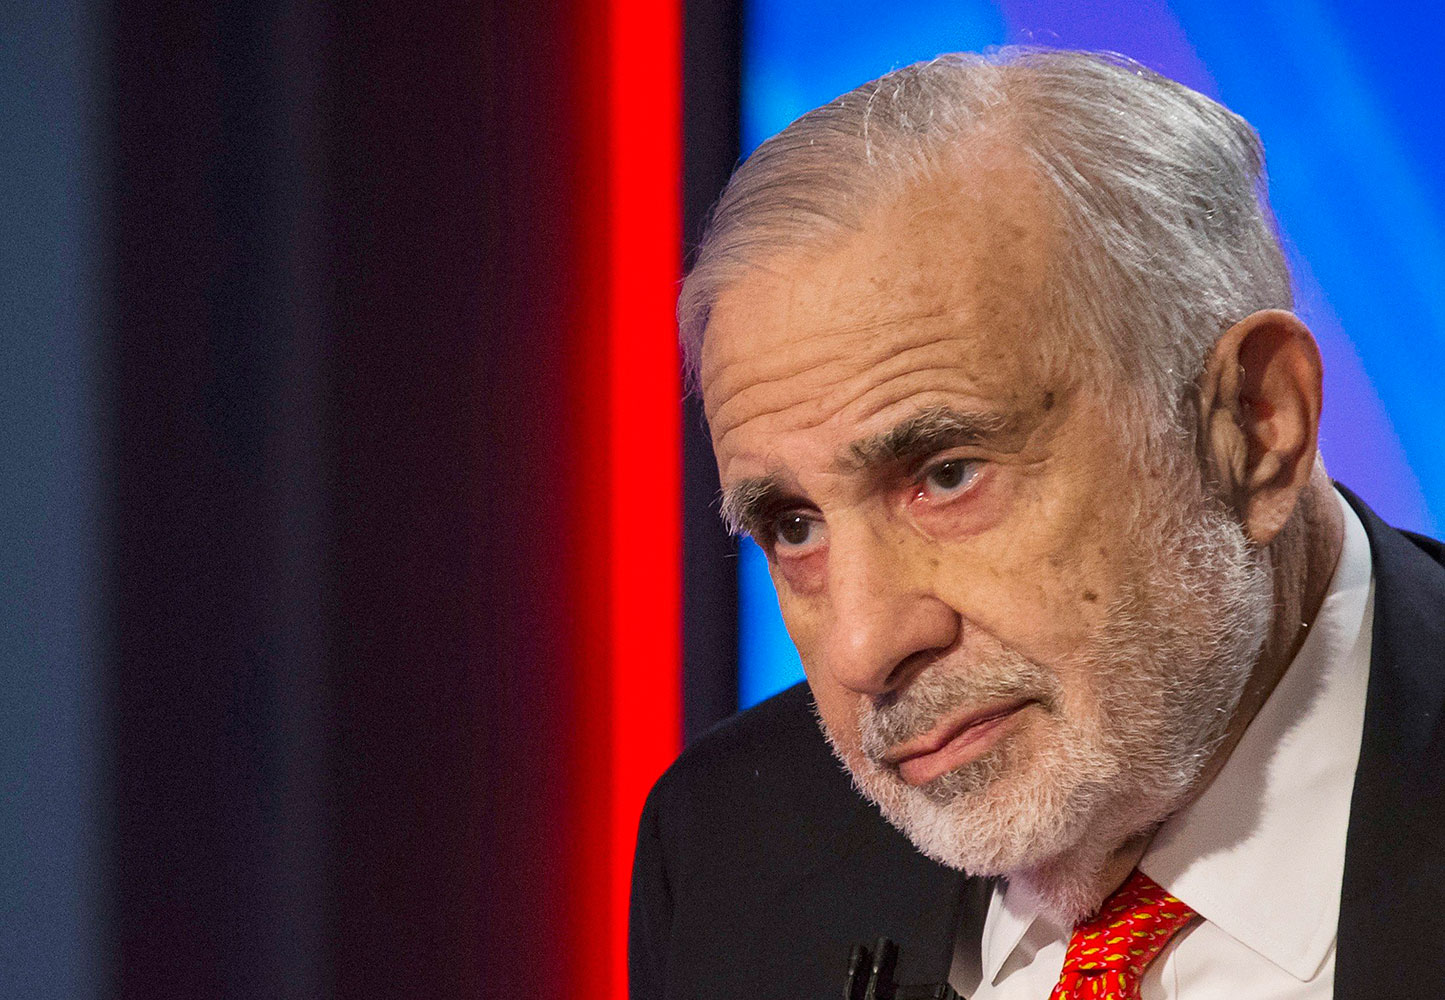 Billionaire activist-investor Carl Icahn gives an interview on FOX Business Network's Neil Cavuto show in New York in this Feb. 11, 2014 file photo. The U.S. Federal Bureau of Investigation and the Securities and Exchange Commission are investigating possible insider trading involving  Icahn, golfer Phil Mickelson and Las Vegas gambler William Walters.